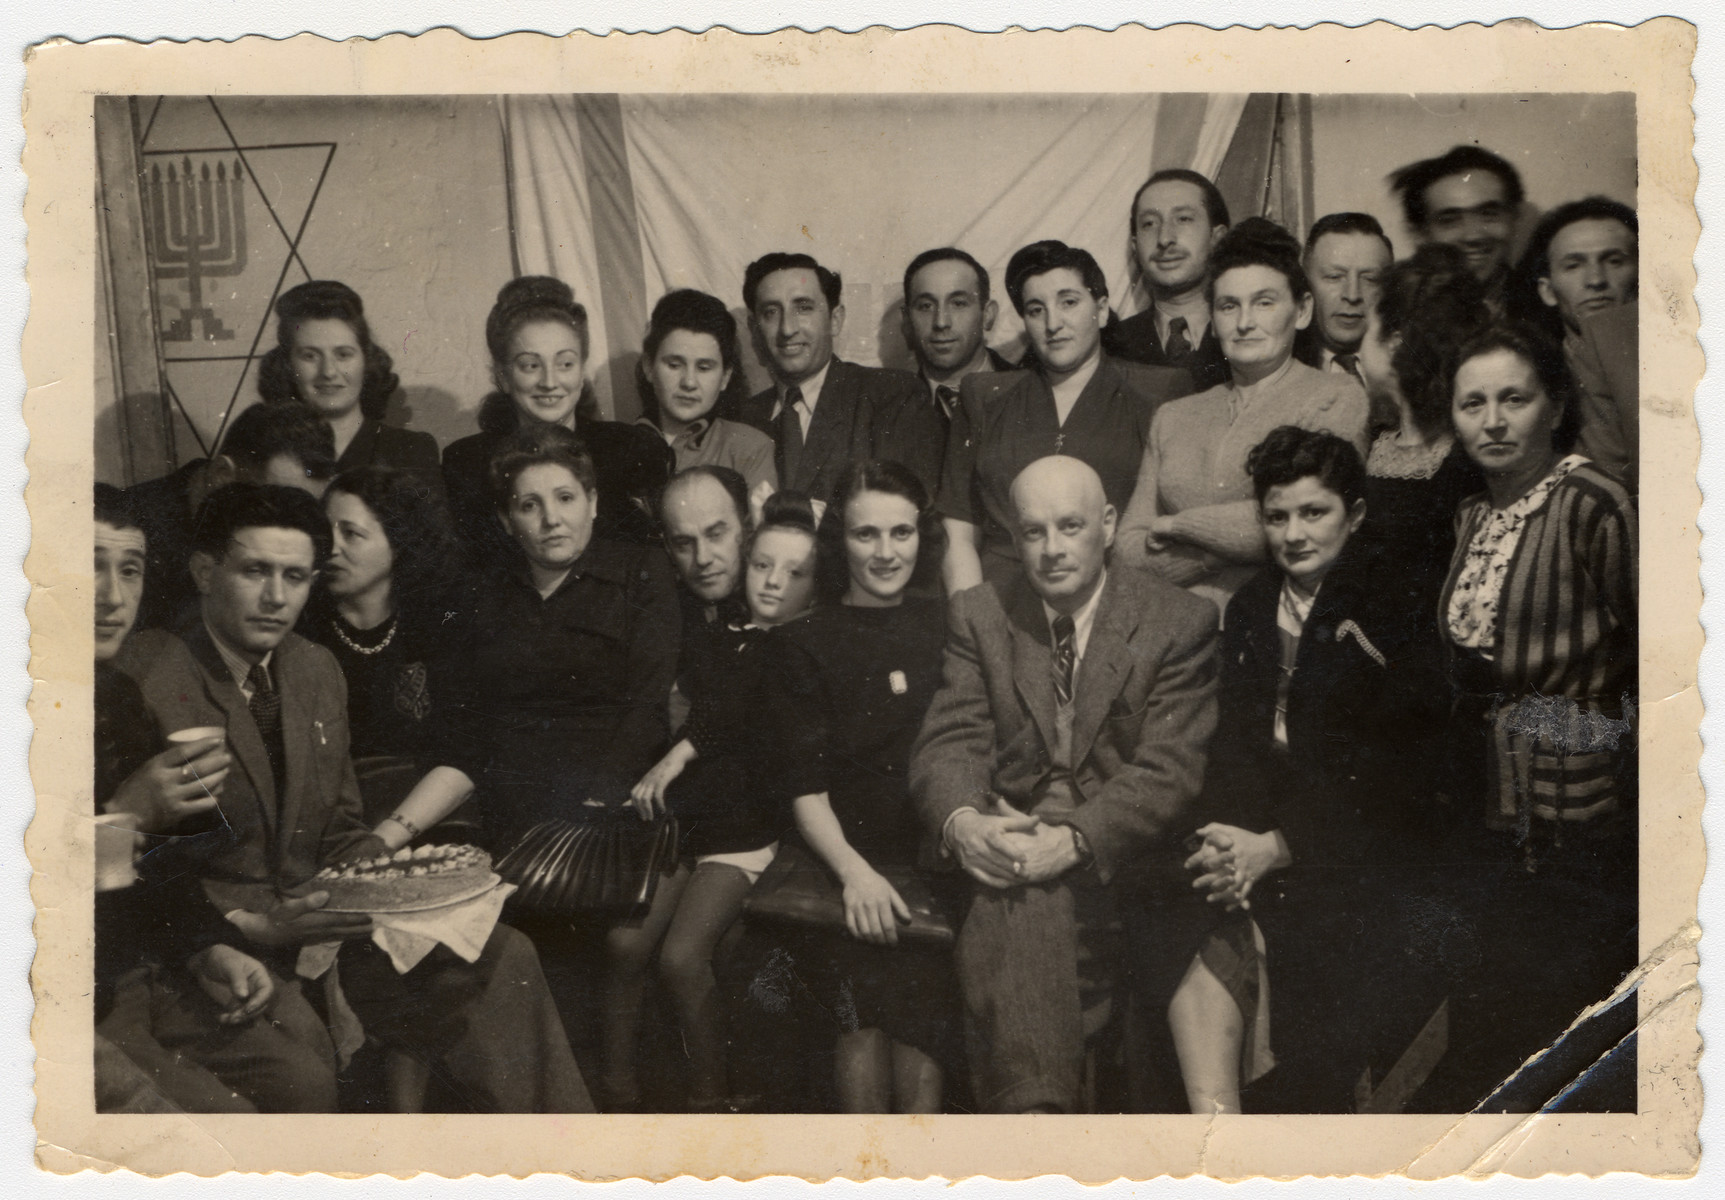 Group photograph of displaced persons in the Foehrenwald Displaced Persons Camp.  Among those pictured are Regina Gertner (back row, second from the left), Samuel Gertner (back row, fifth from the left), and Lucy Gertner (front row, child fifth from the left).